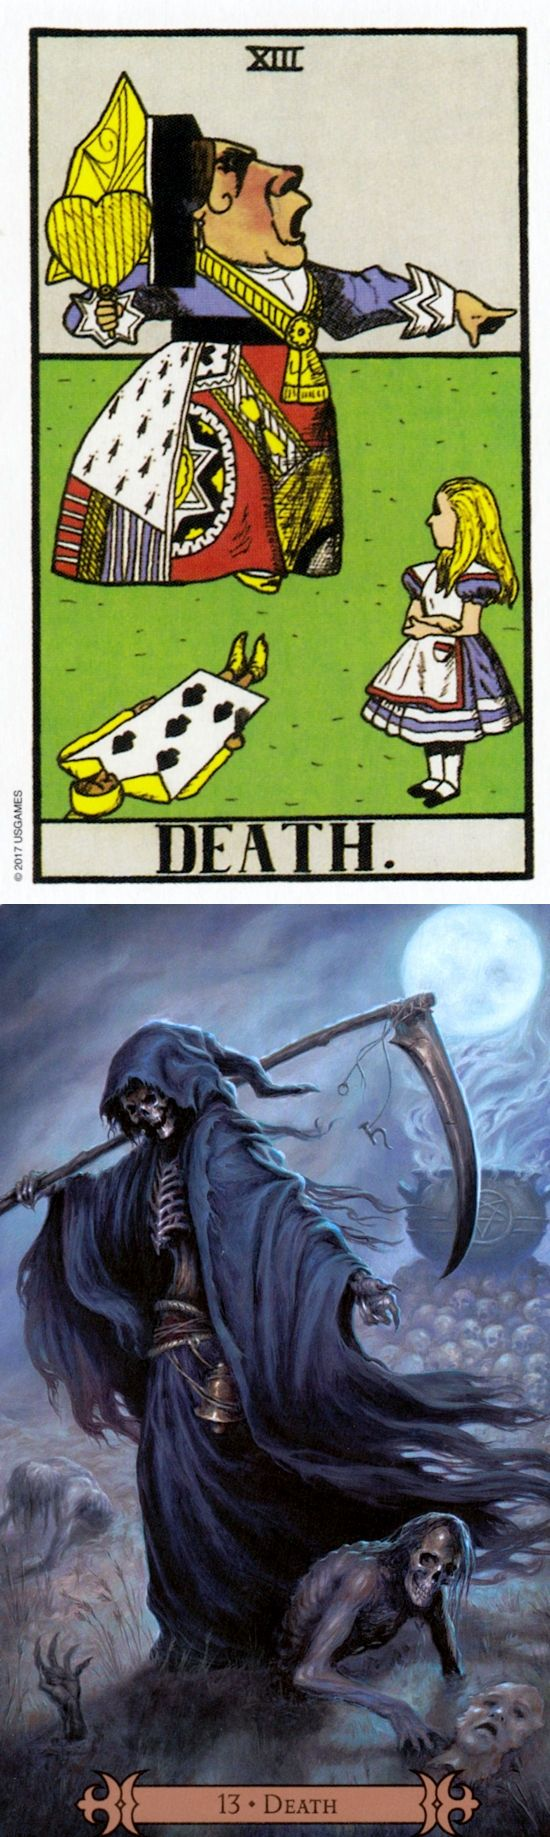 DEATH: end and fear of change (reverse). Wonderland Tarot deck and Spellcasters Tarot deck: horoscope tarot cards, free online tarot reading and free online tarot card reading lotus. New fortune telling cards and predictions of the future.